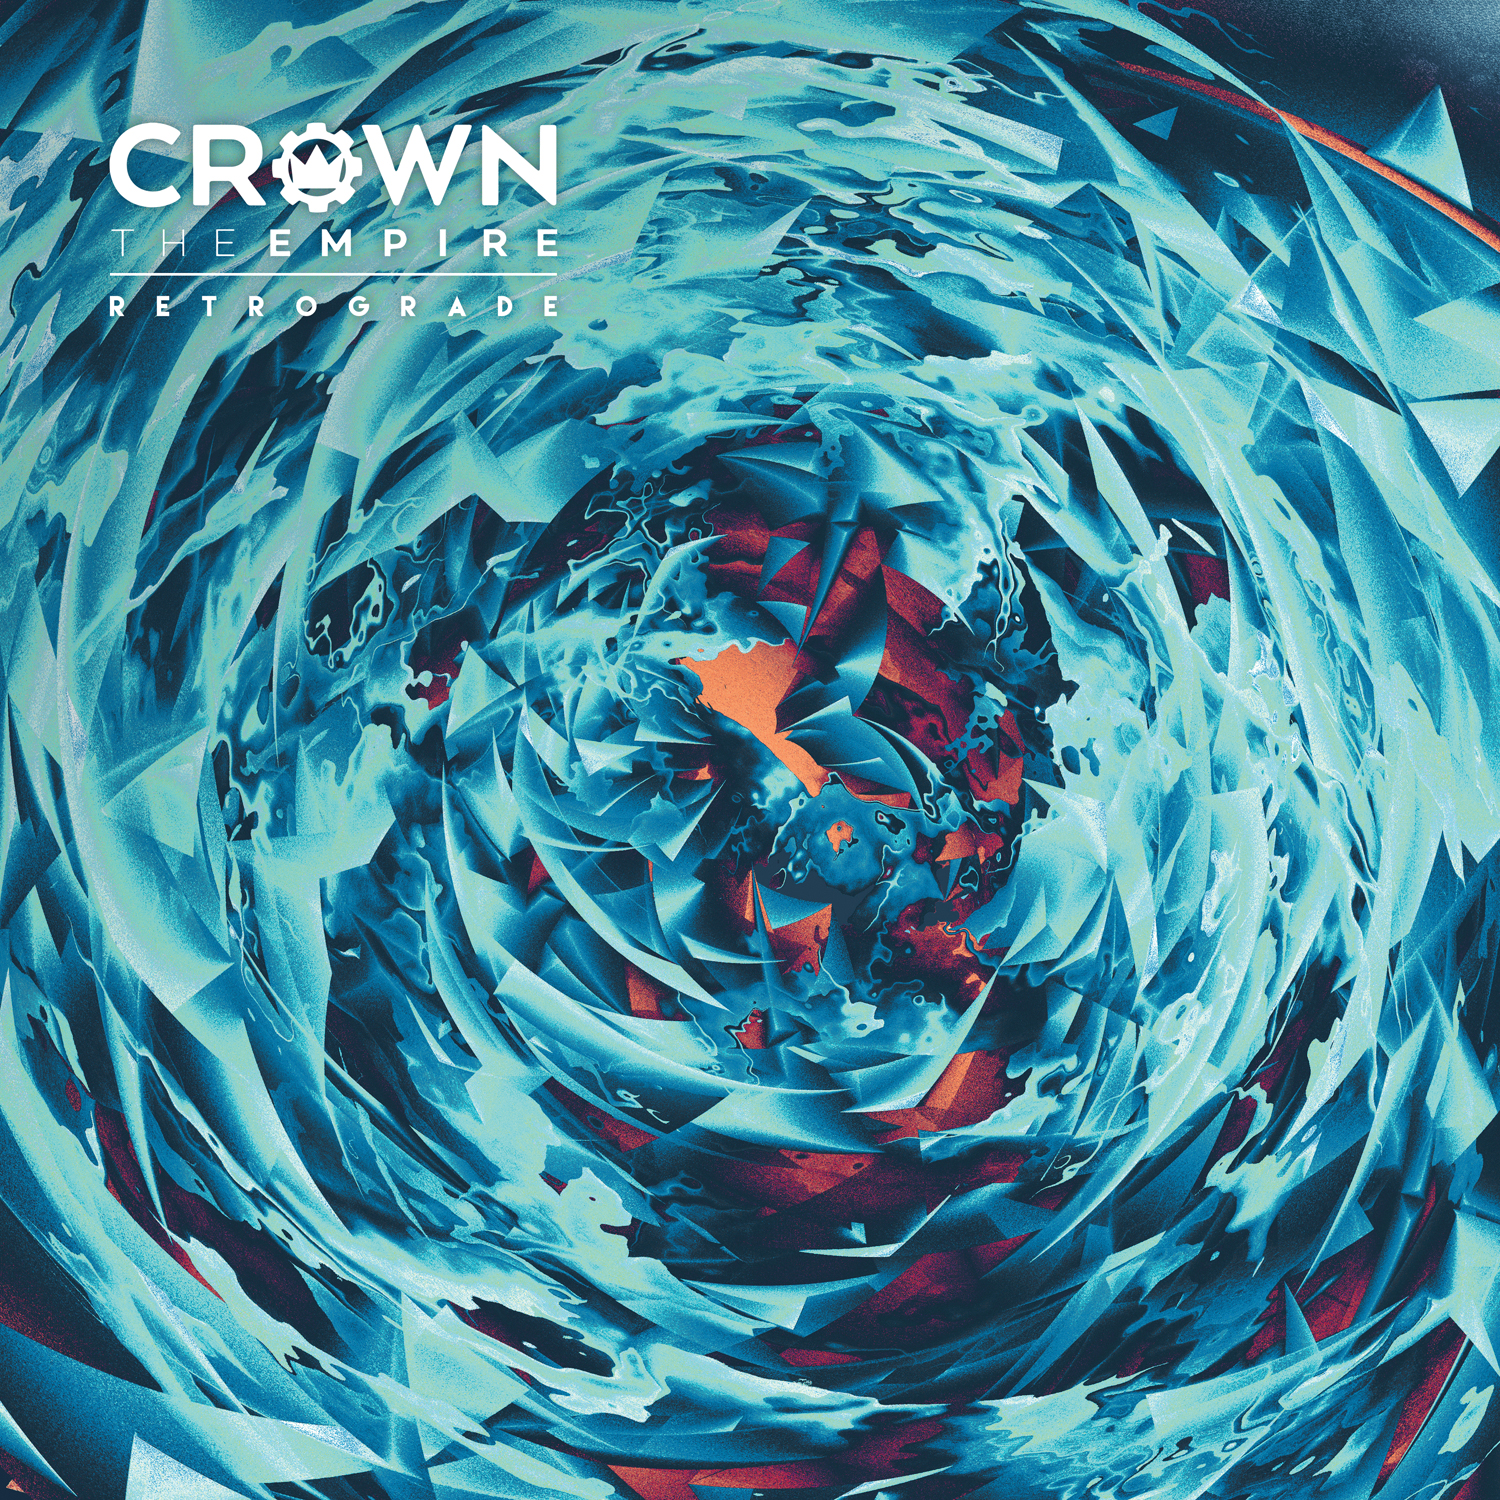 Crown the Empires Retrograde features spacethemed